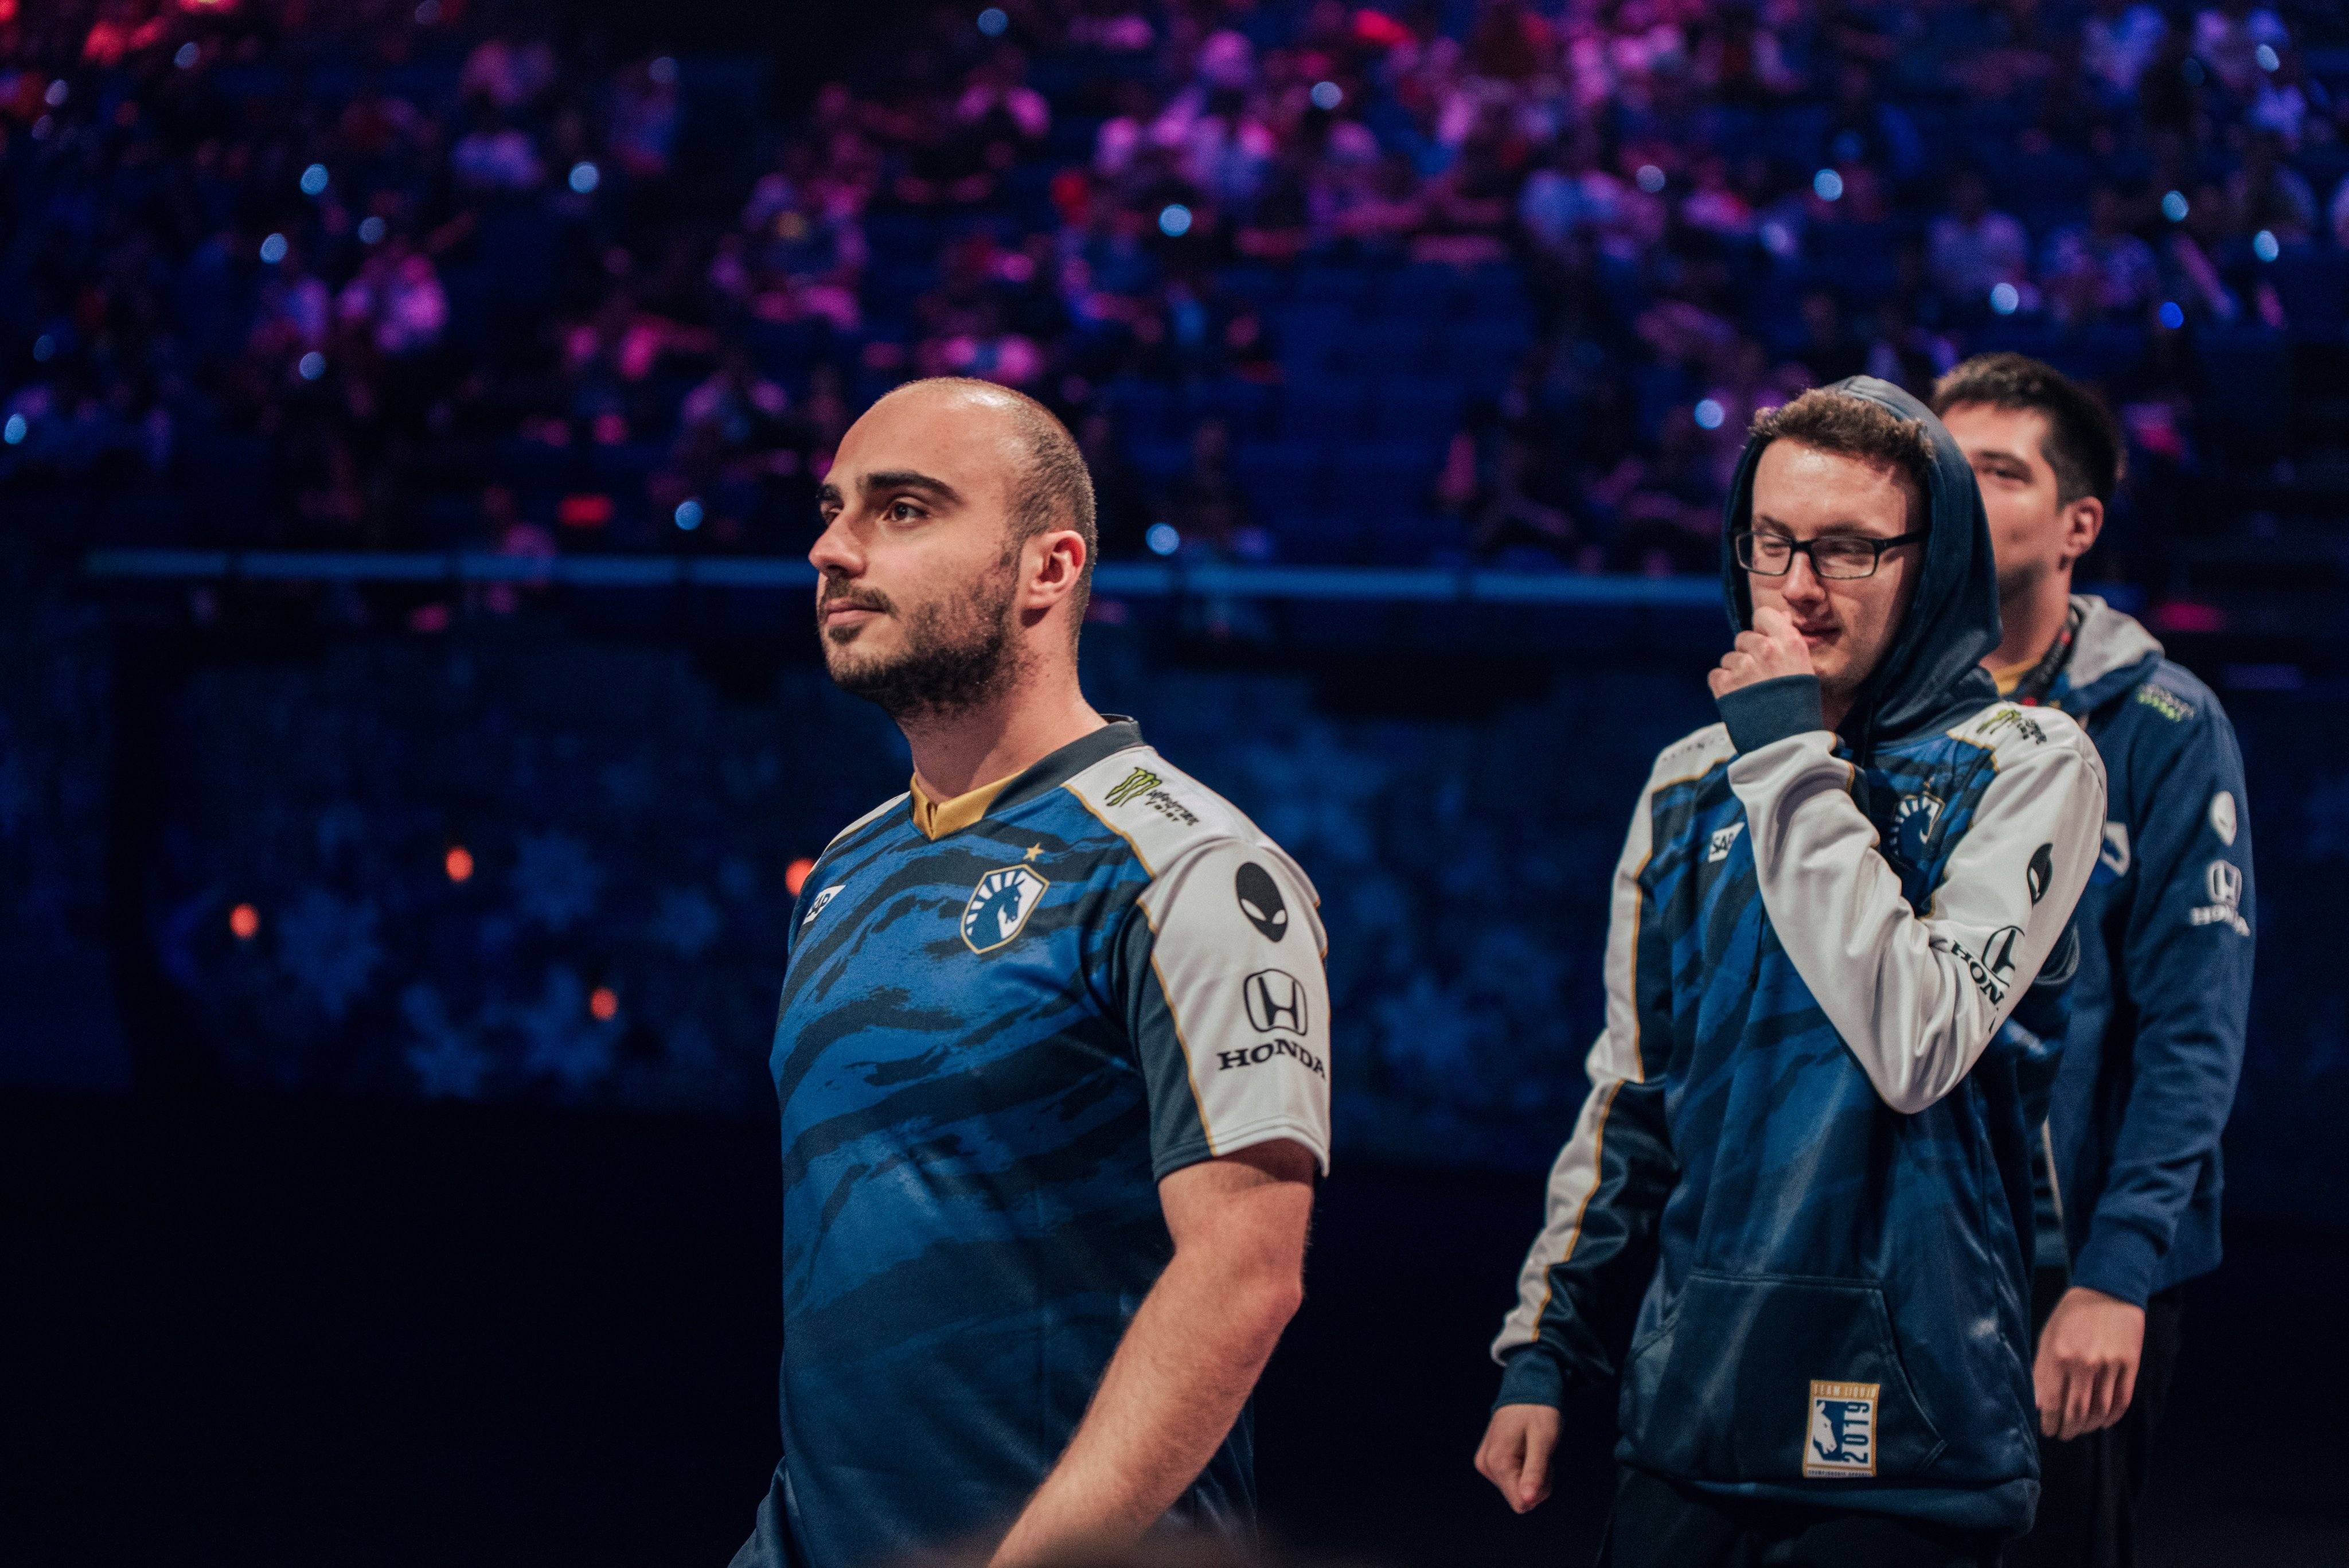 TI9 Fantasy Roster picks The International 2019